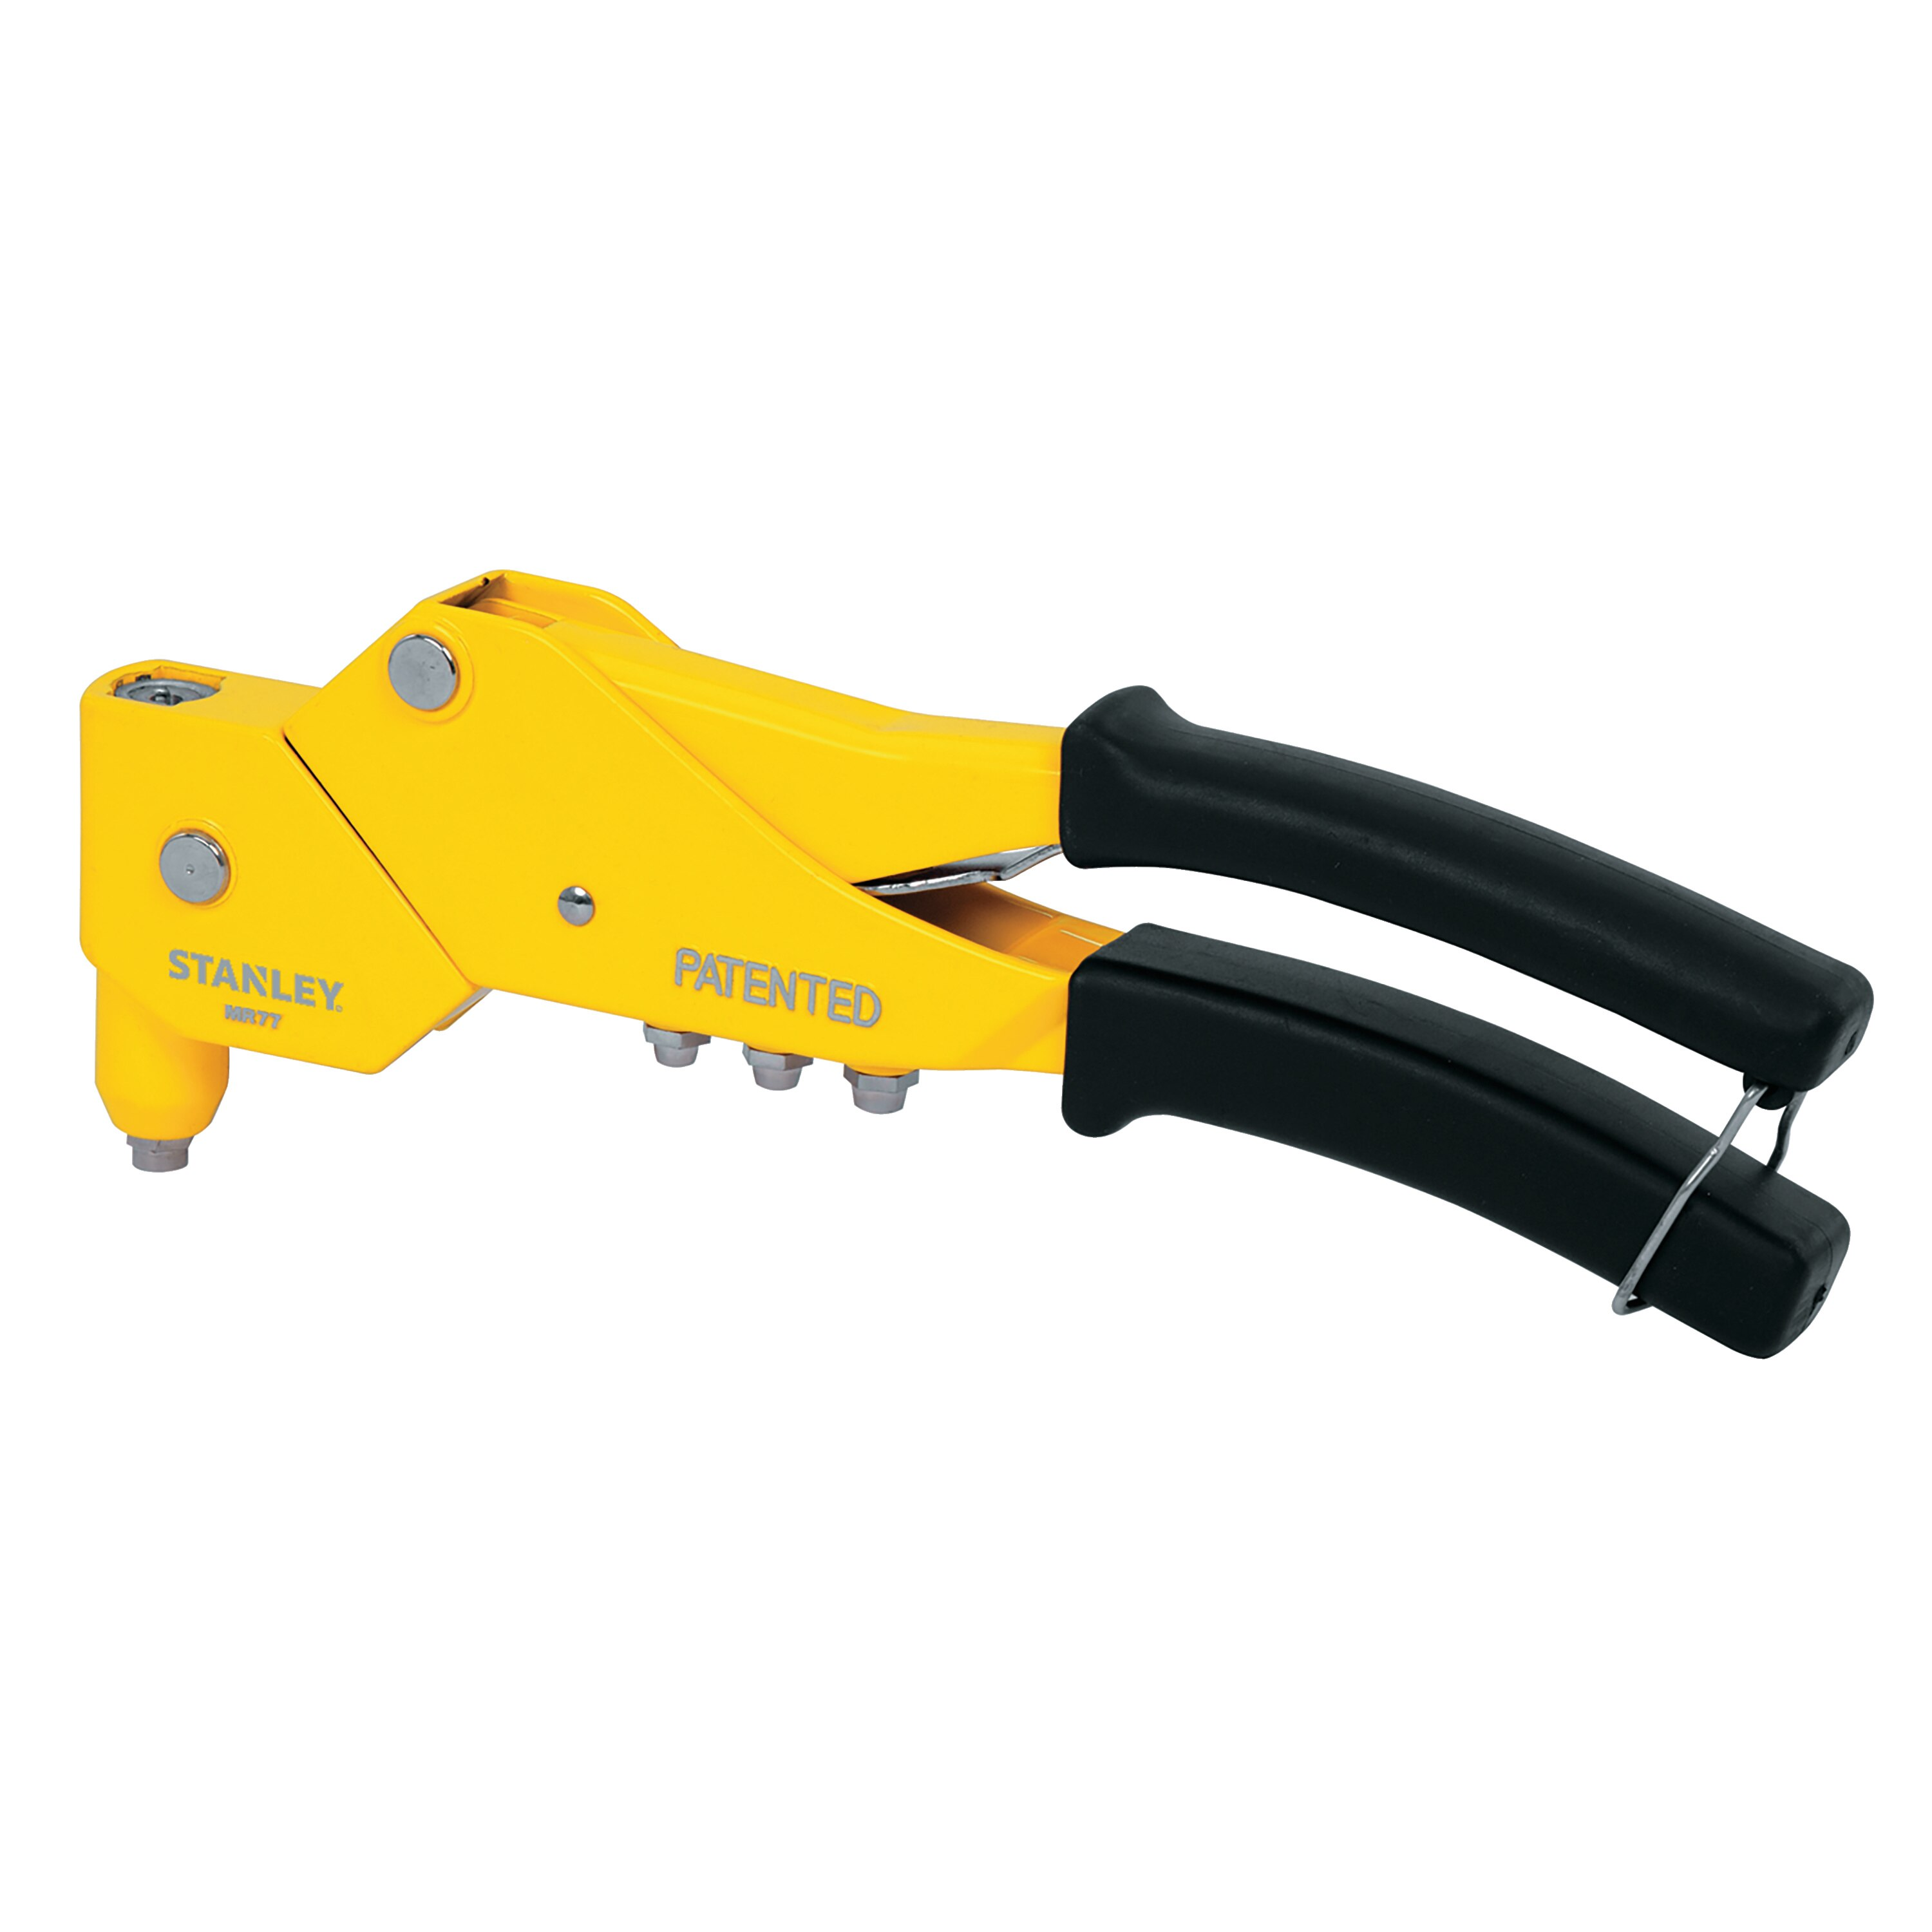 Stanley Tools - 1118 in Swivel Head Riveter - MR77C